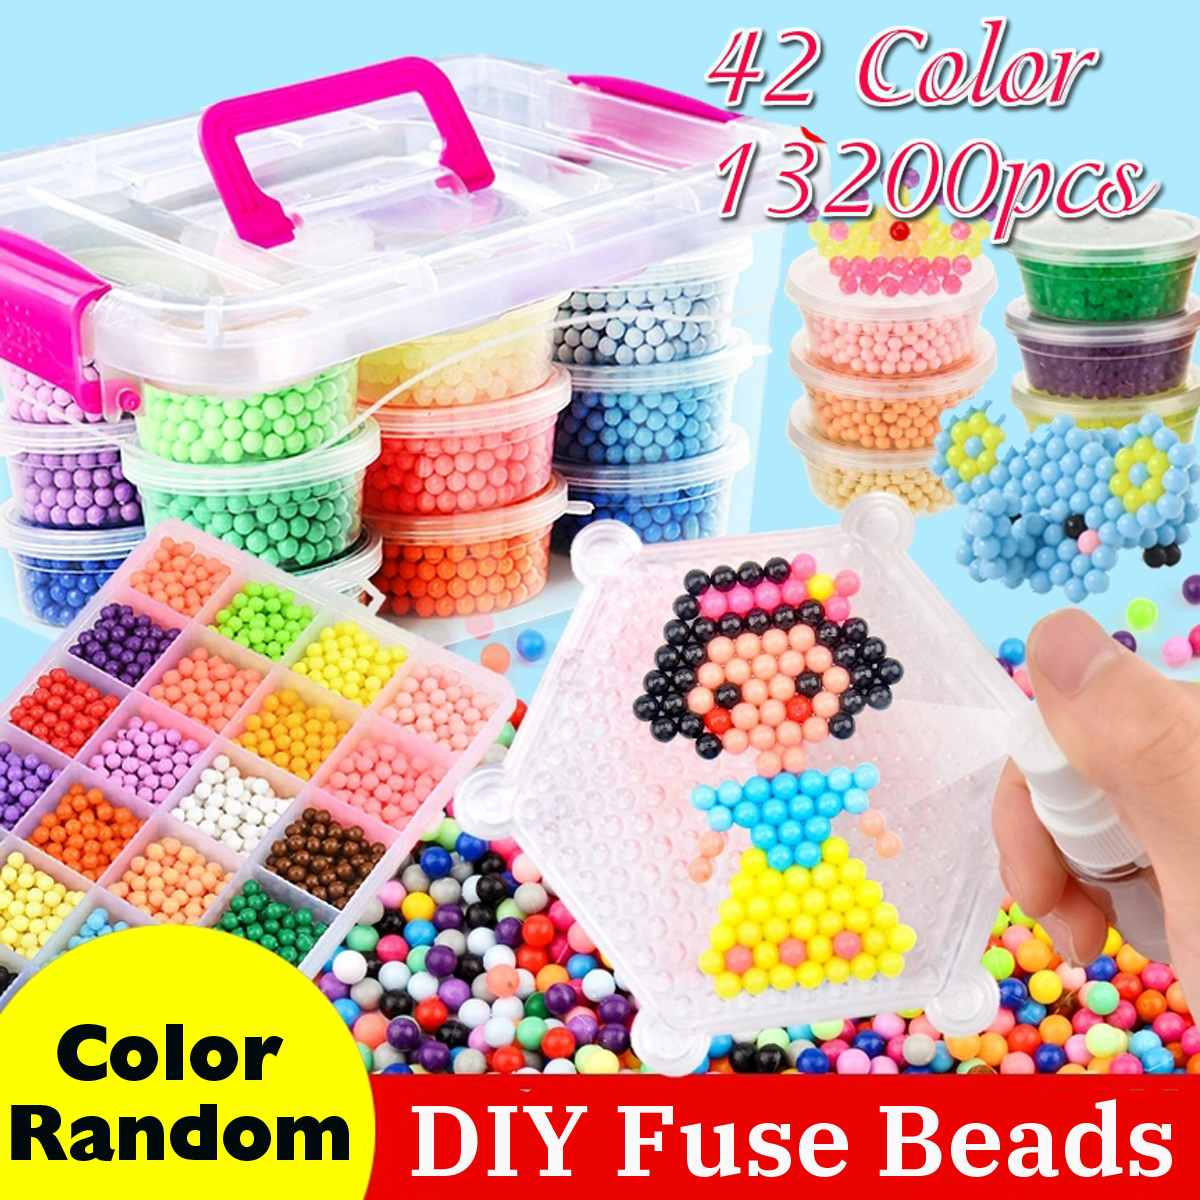 13200pcs 42 Colors DIY 3D Water Magic Beads Fuse Beads Spray Water Puzzle Jigsaw Puzzle Christmas Gifts for Kids Toy